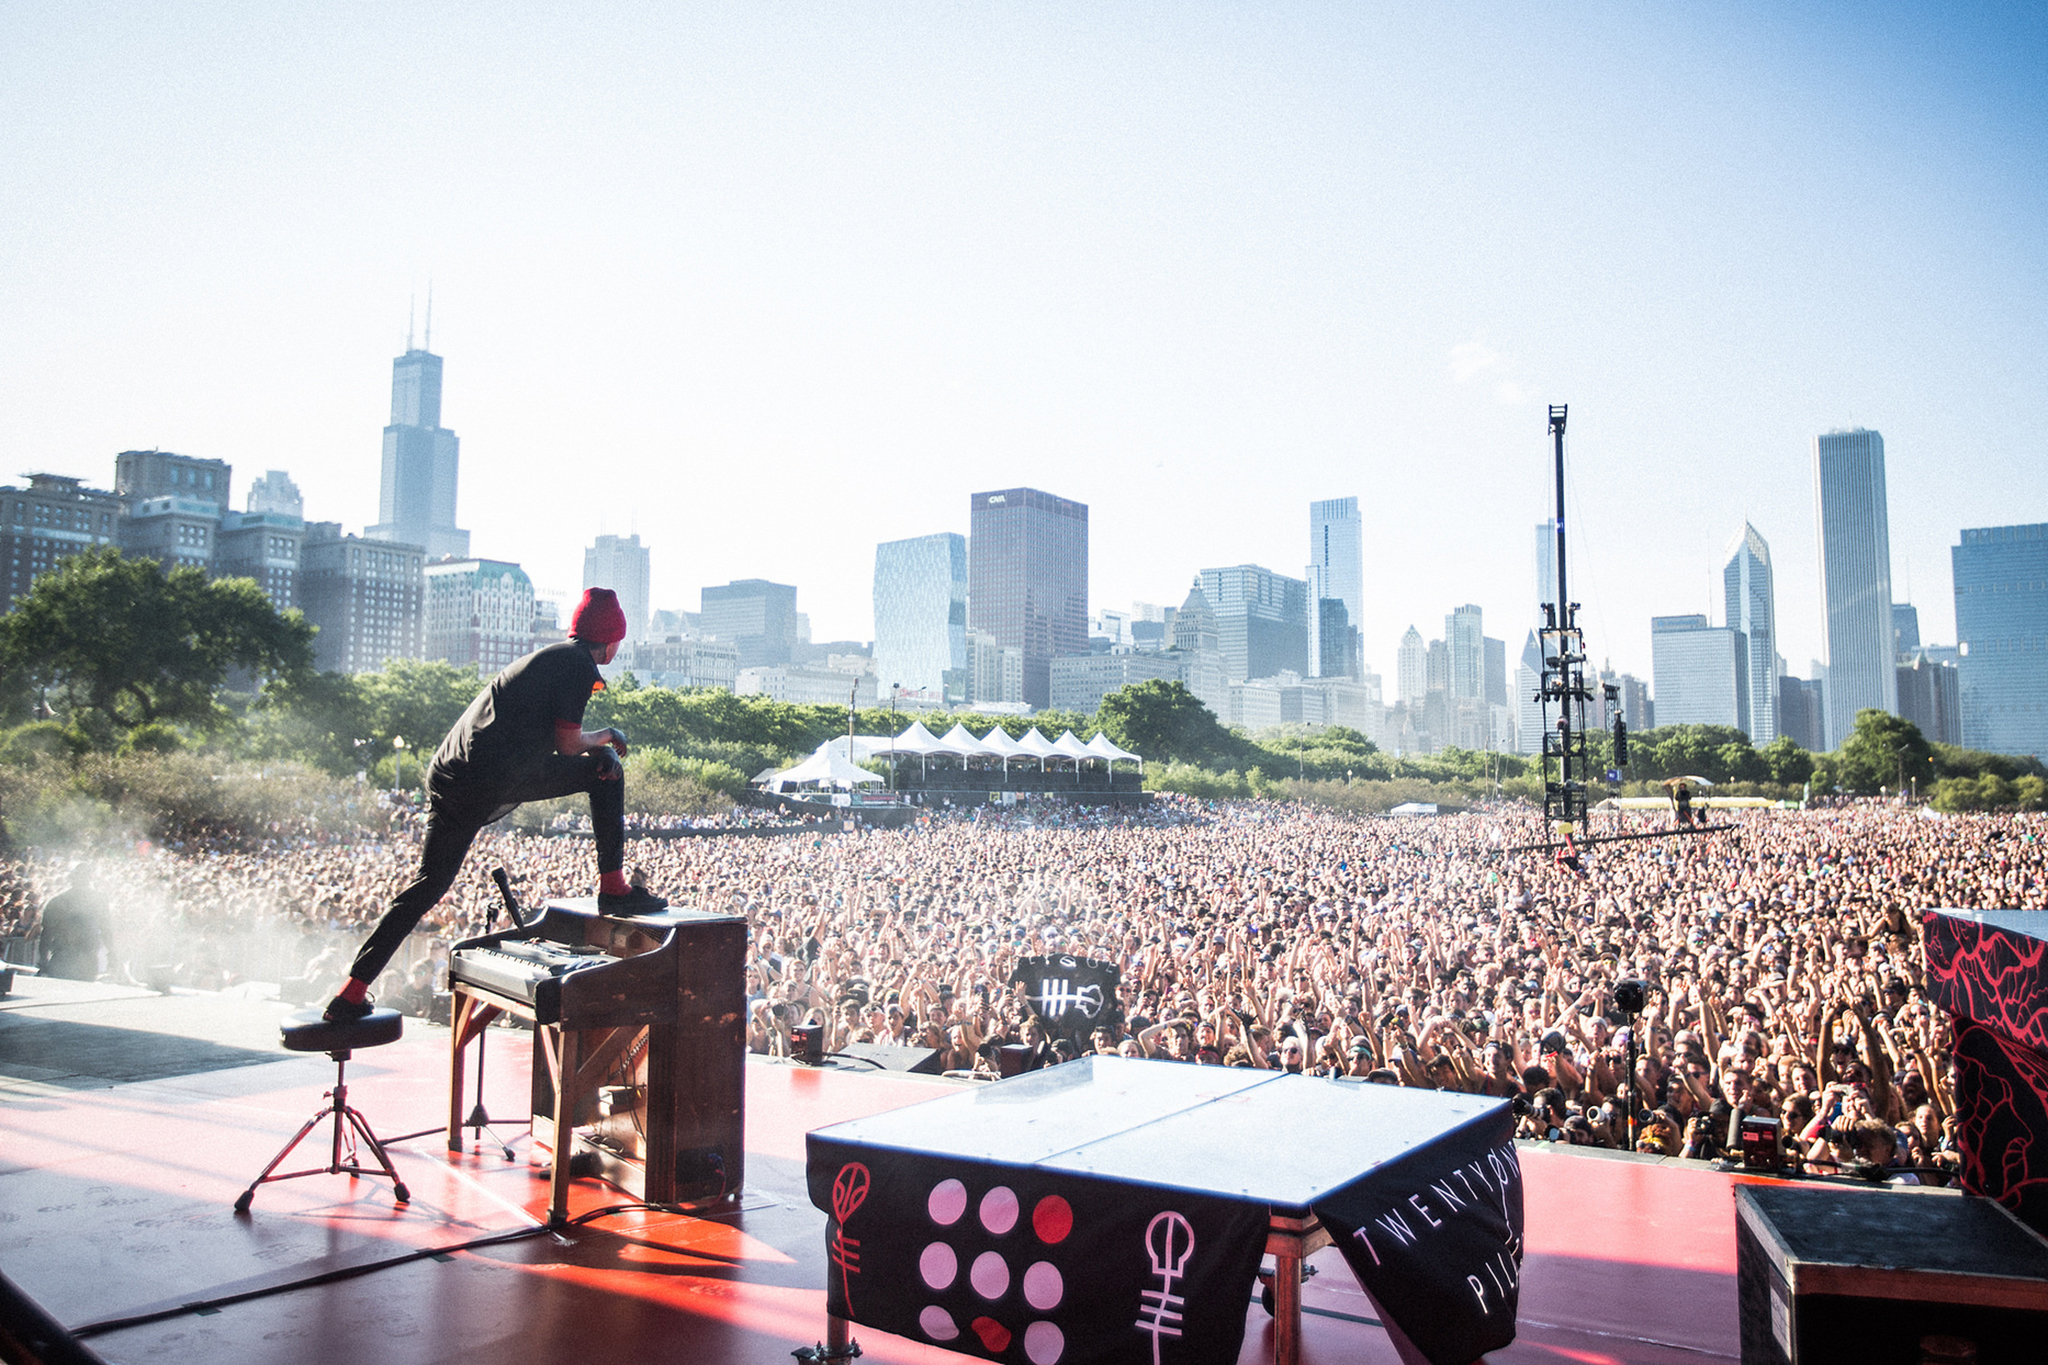 Looking back at 25 years of Lollapalooza